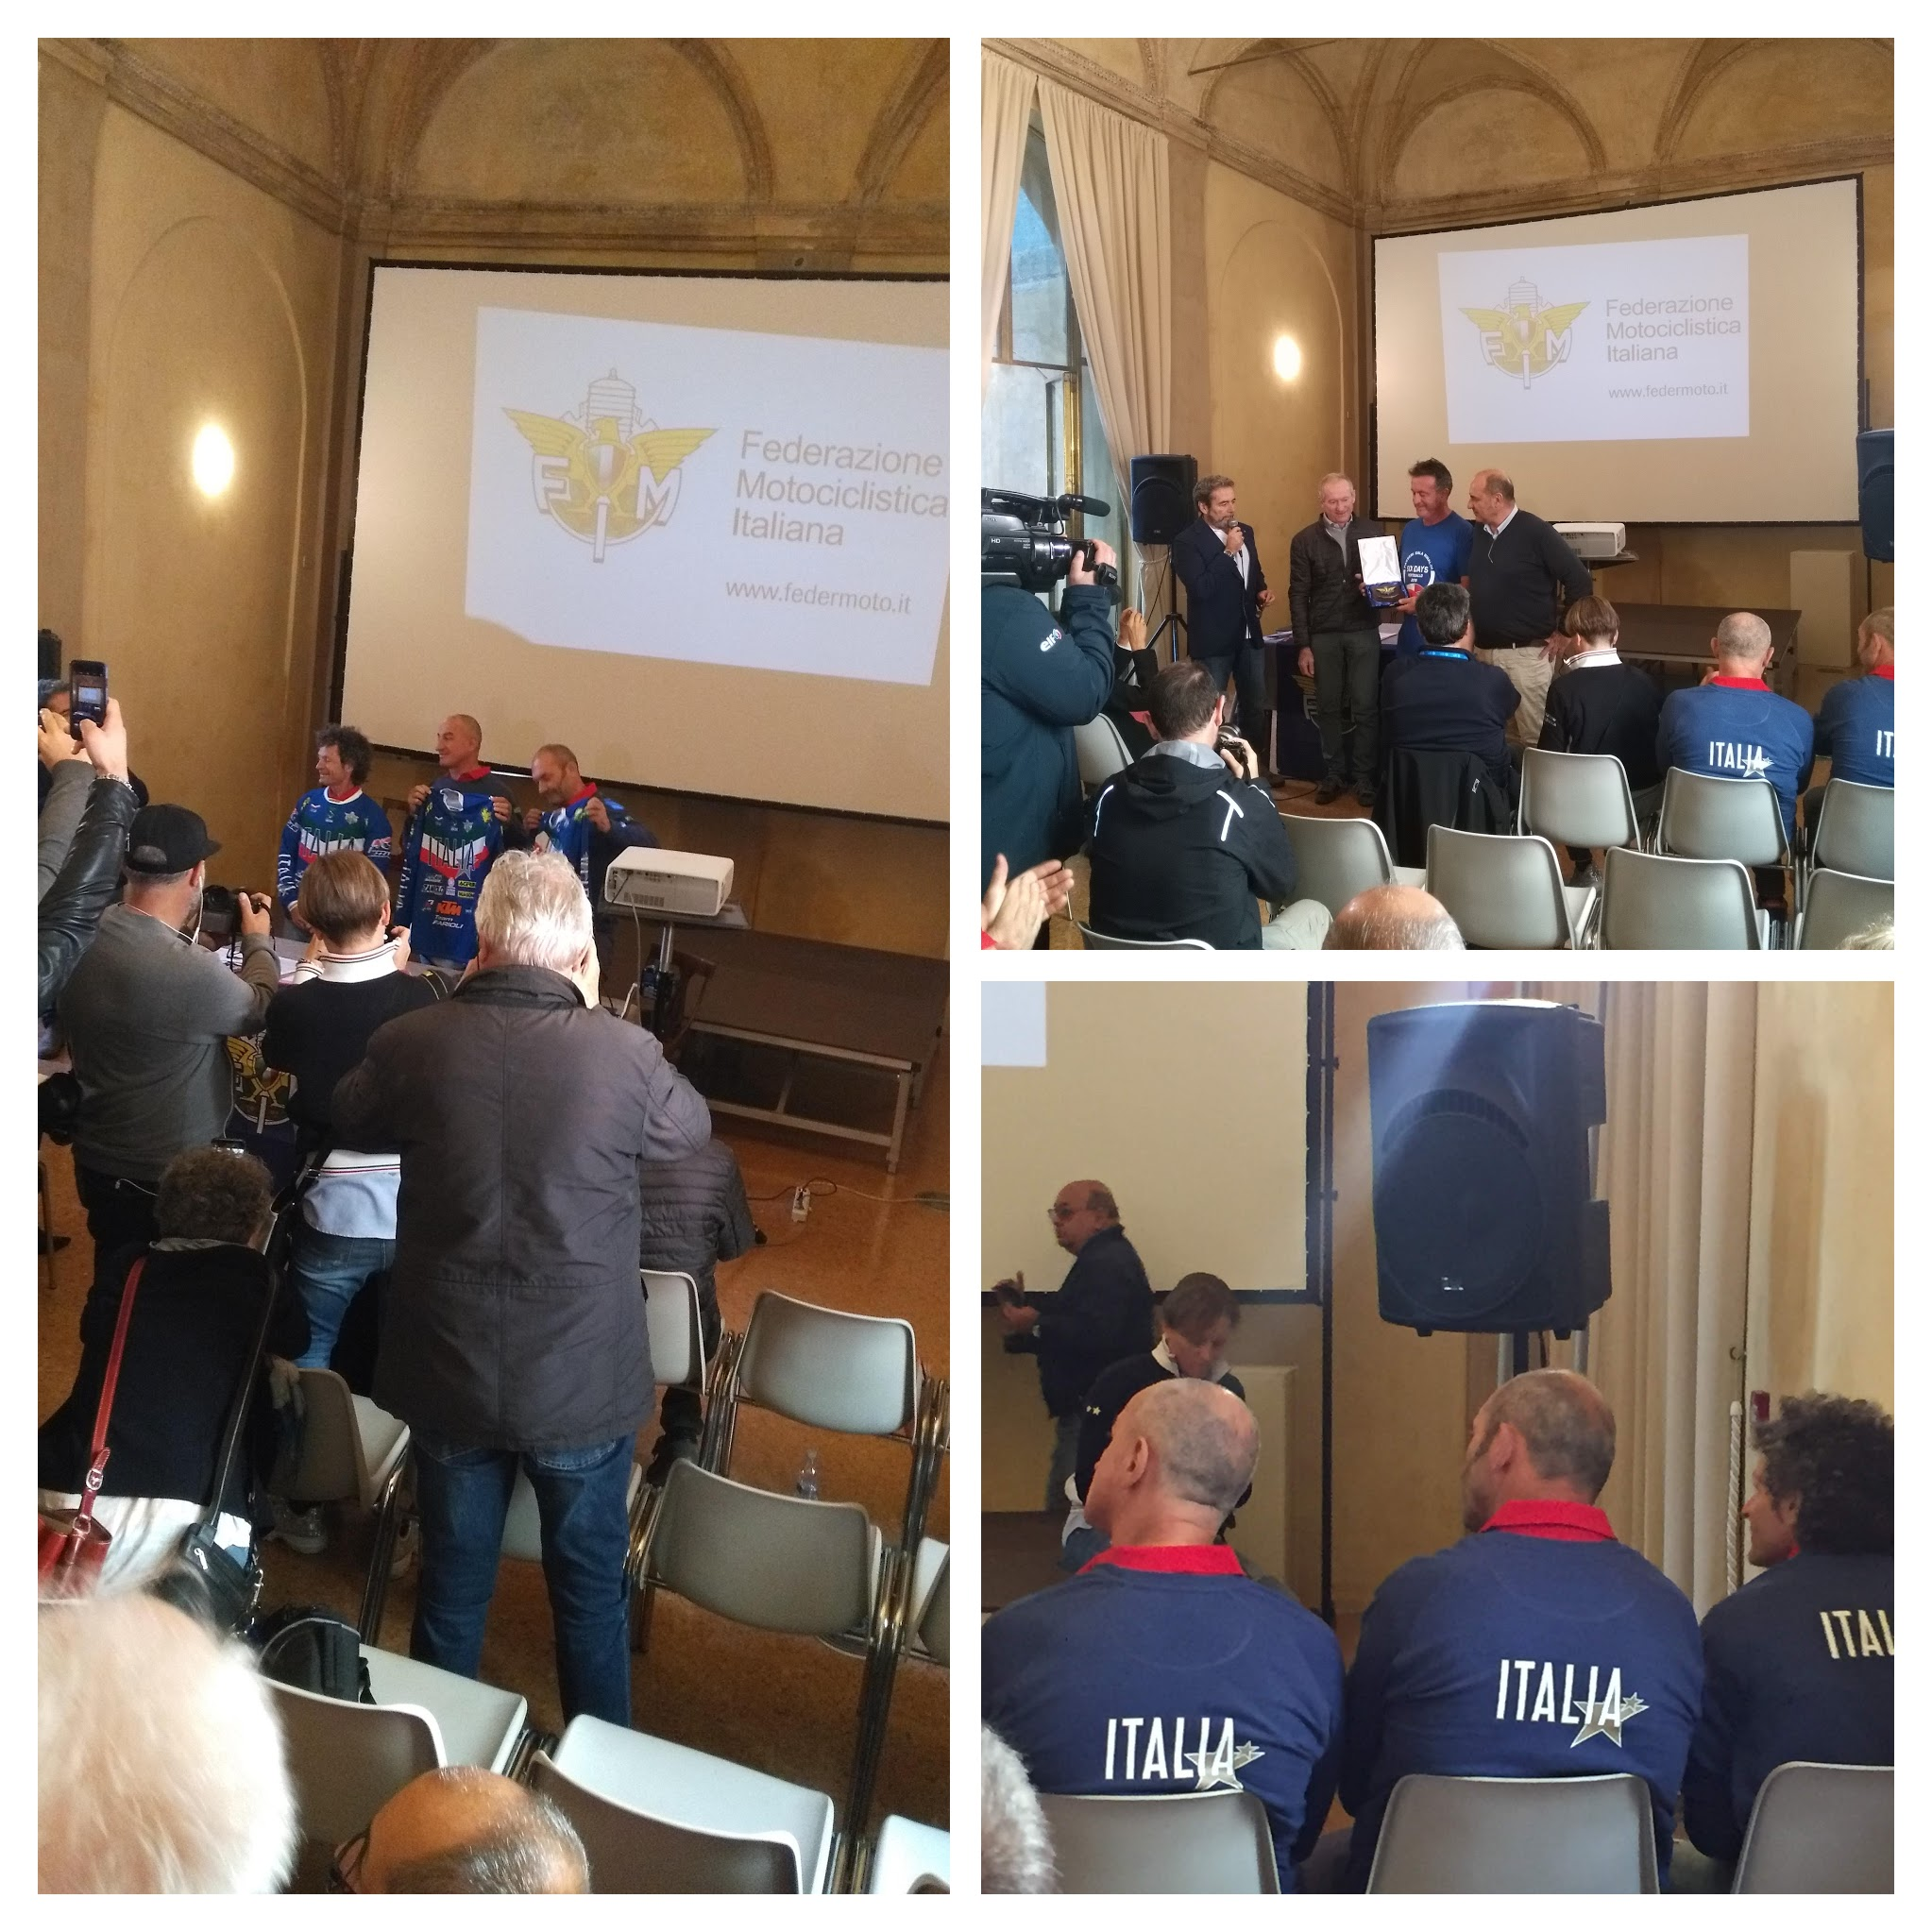 italiainpiega-evento-presentazione dream team